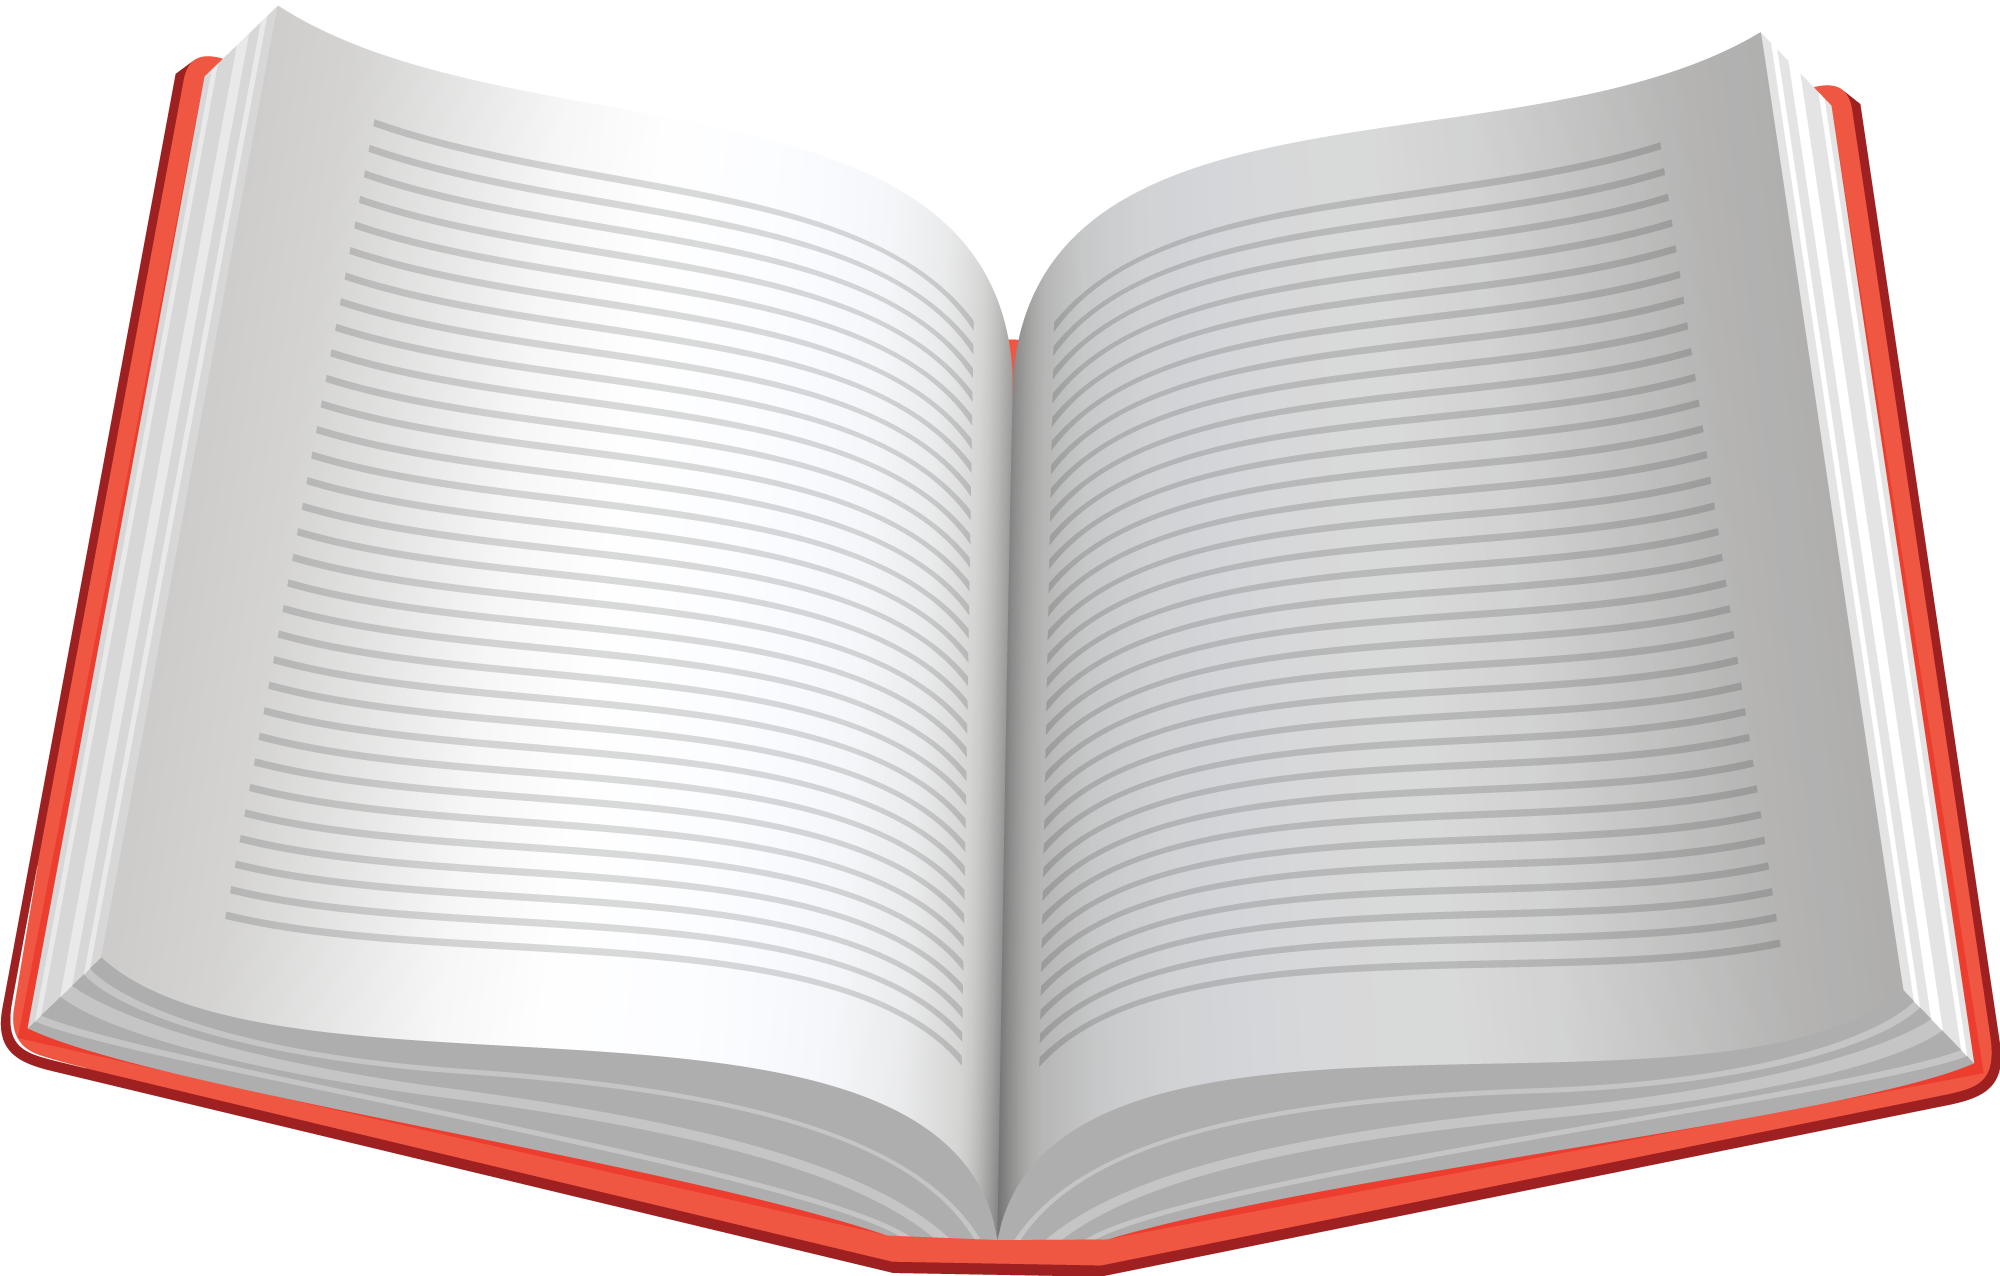 Book PNG images download, open book PNG.